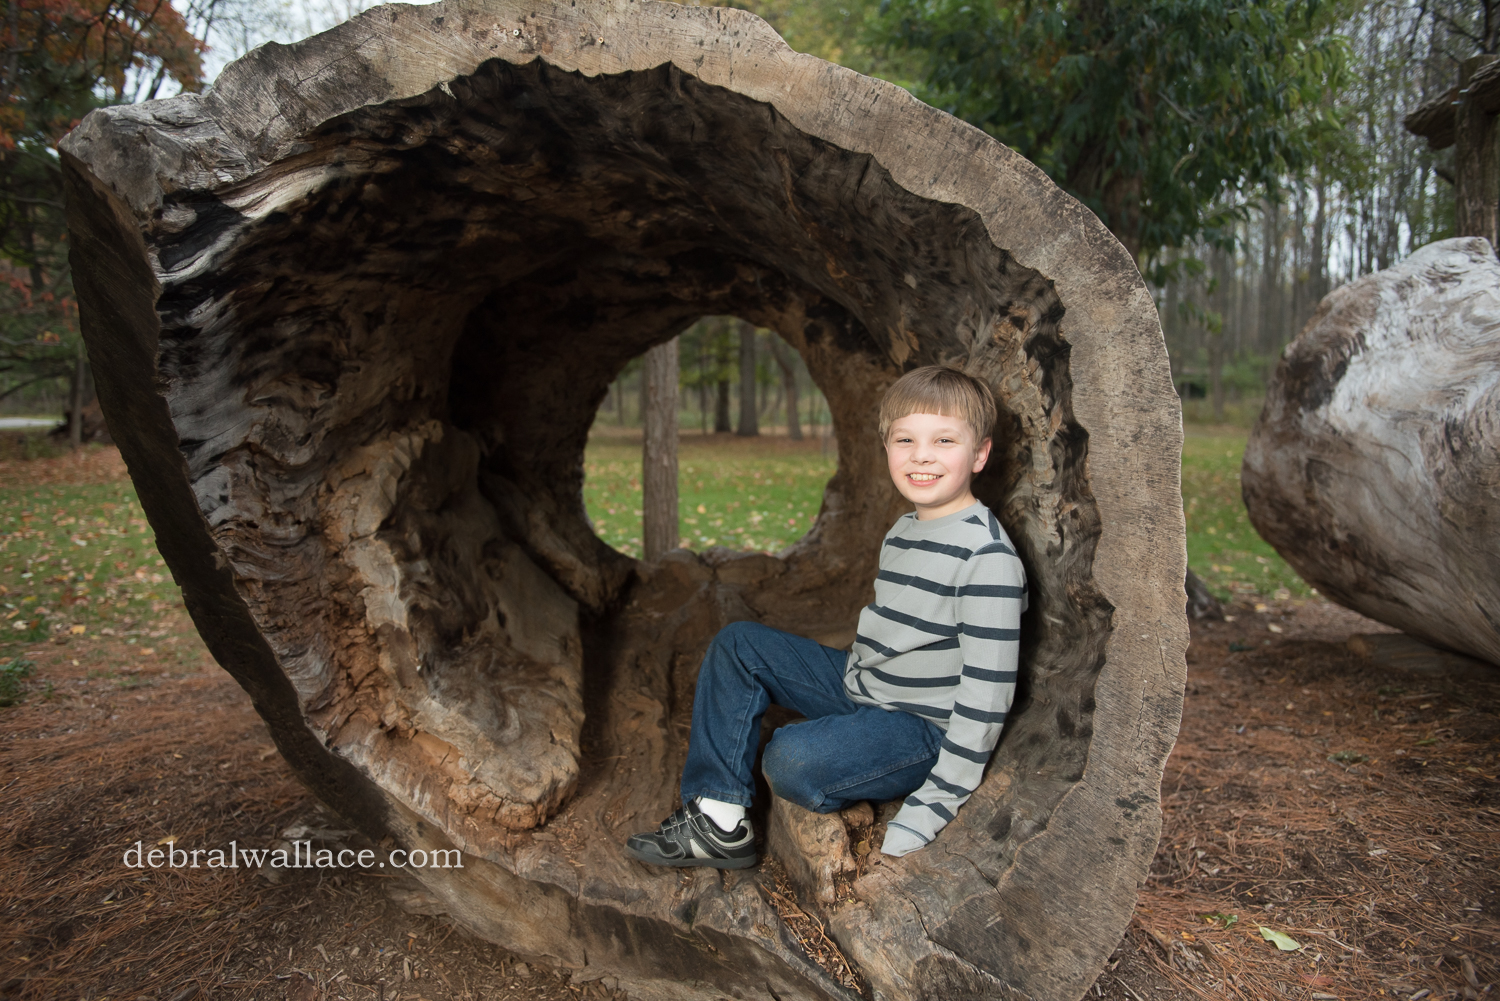 mendon-ponds-family-photography-hollow-log-leaves-brothers-1392